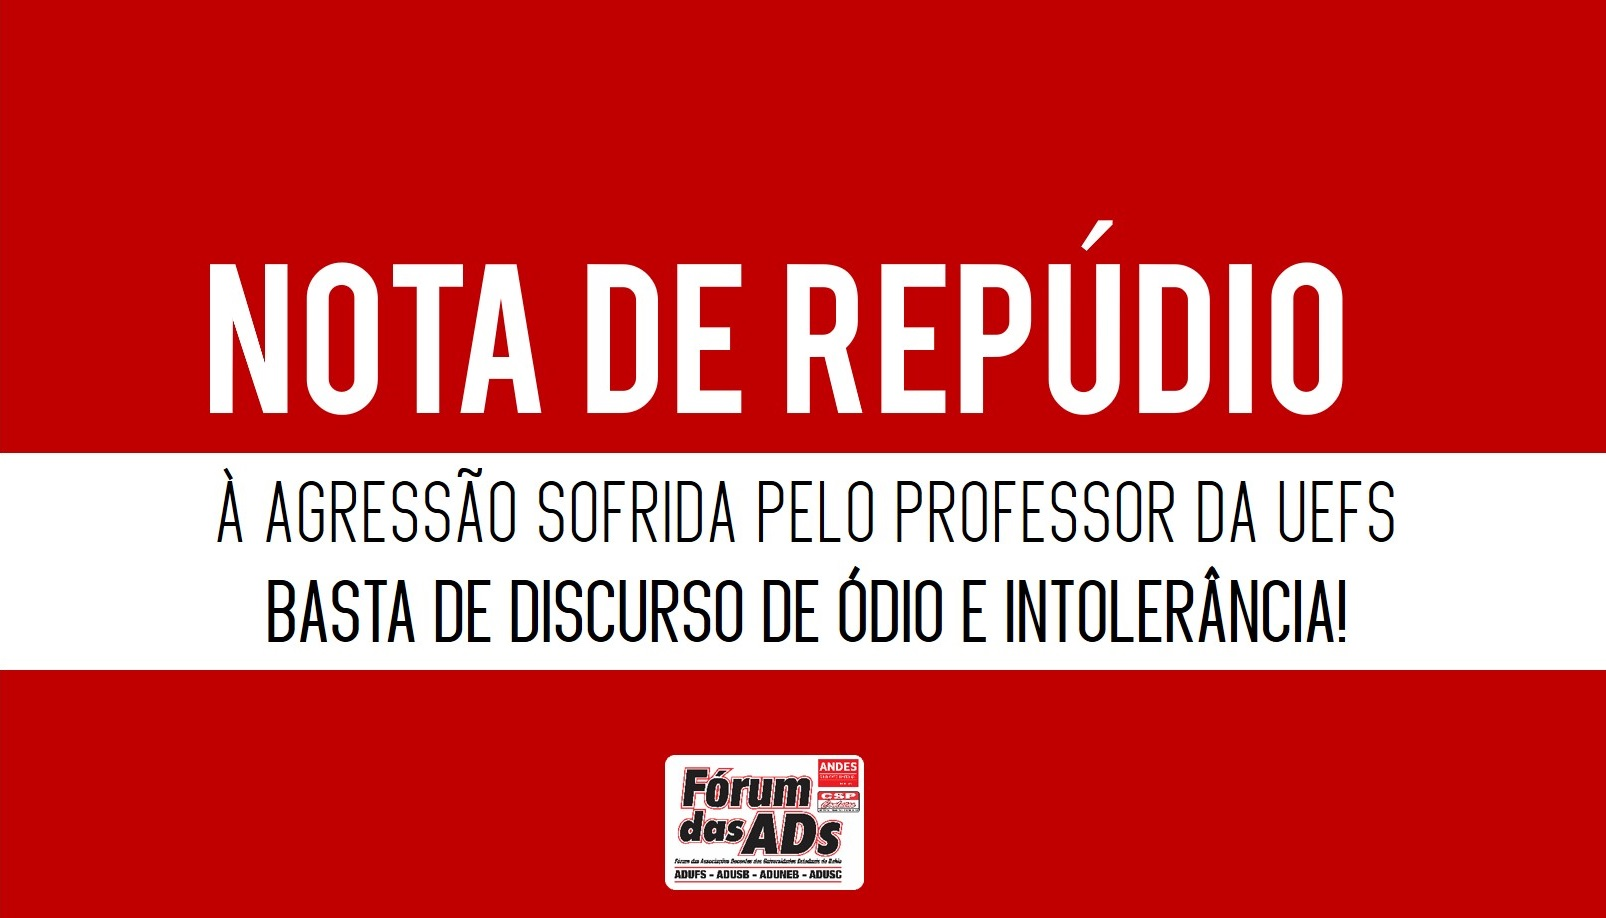 Nota de Repúdio do Fórum das ADs